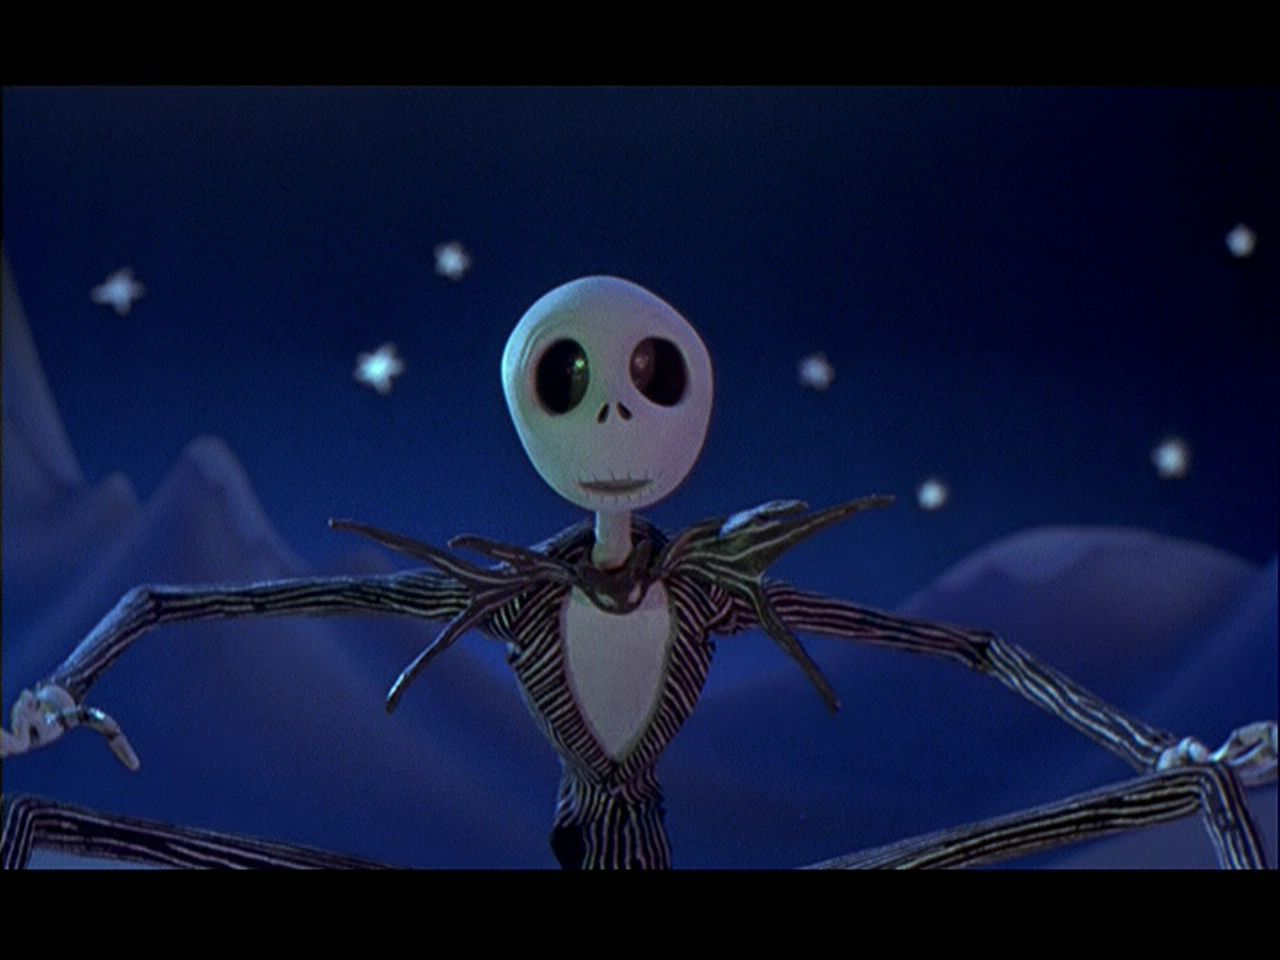 The Nightmare Before Christmas - nightmare-before-christmas ...